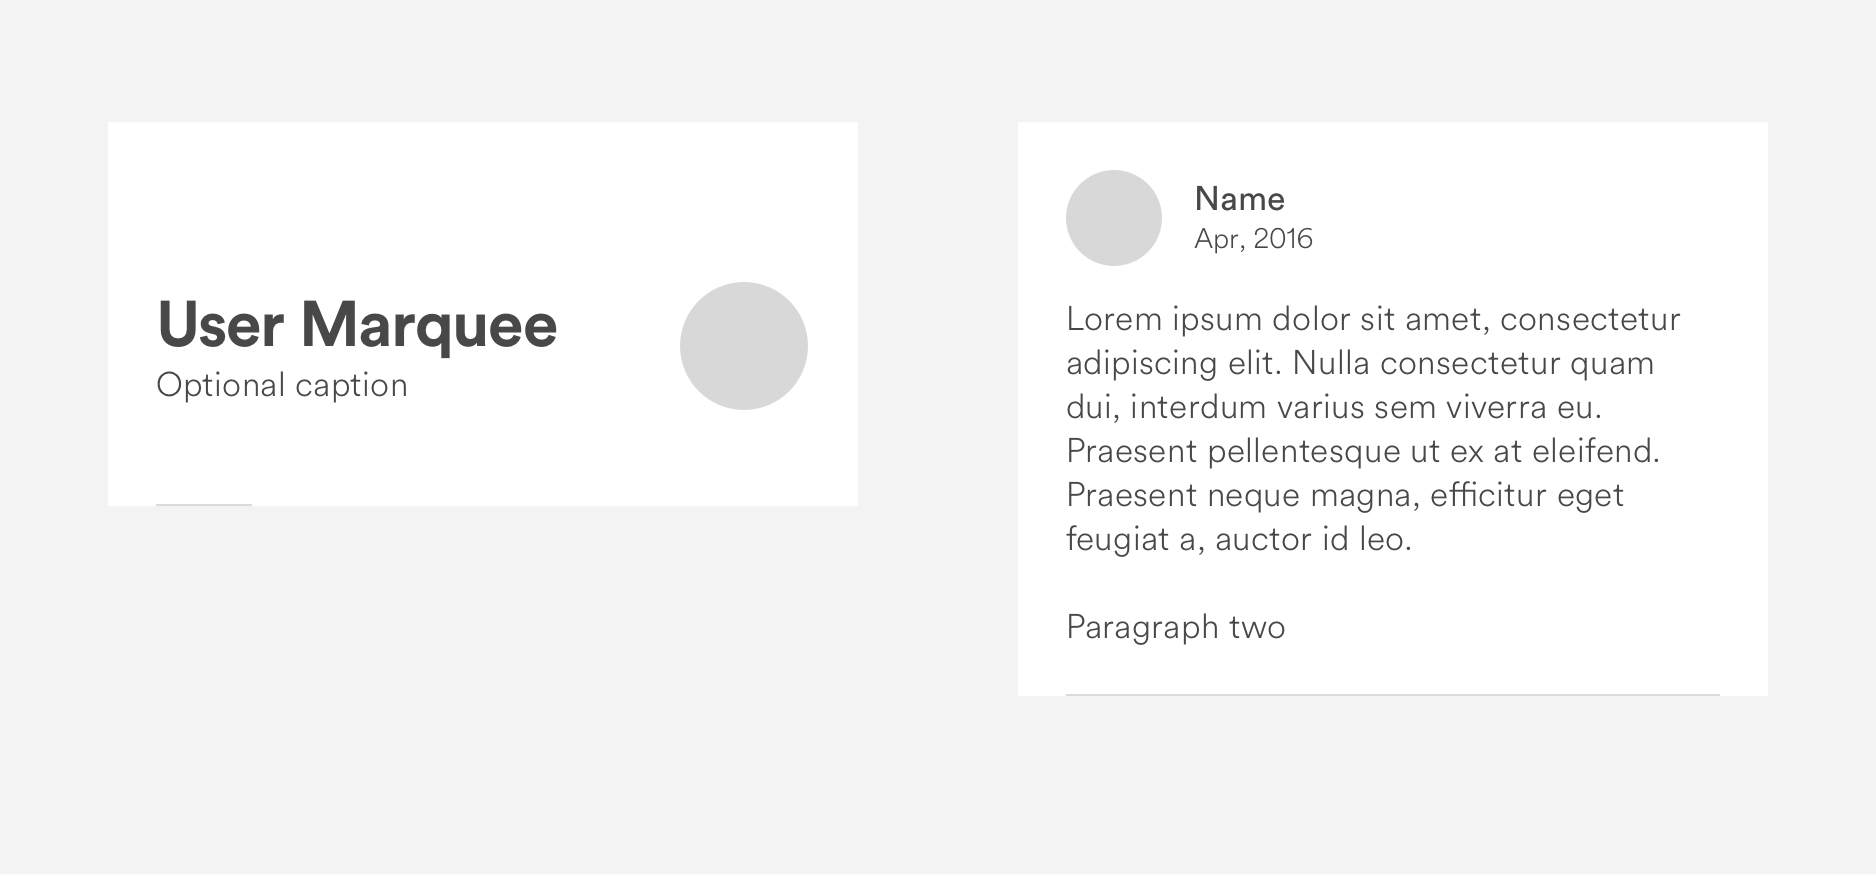 Screenshot of an in-progress UX design for a user profile, illustrating Airbnb's DLS (design language system)